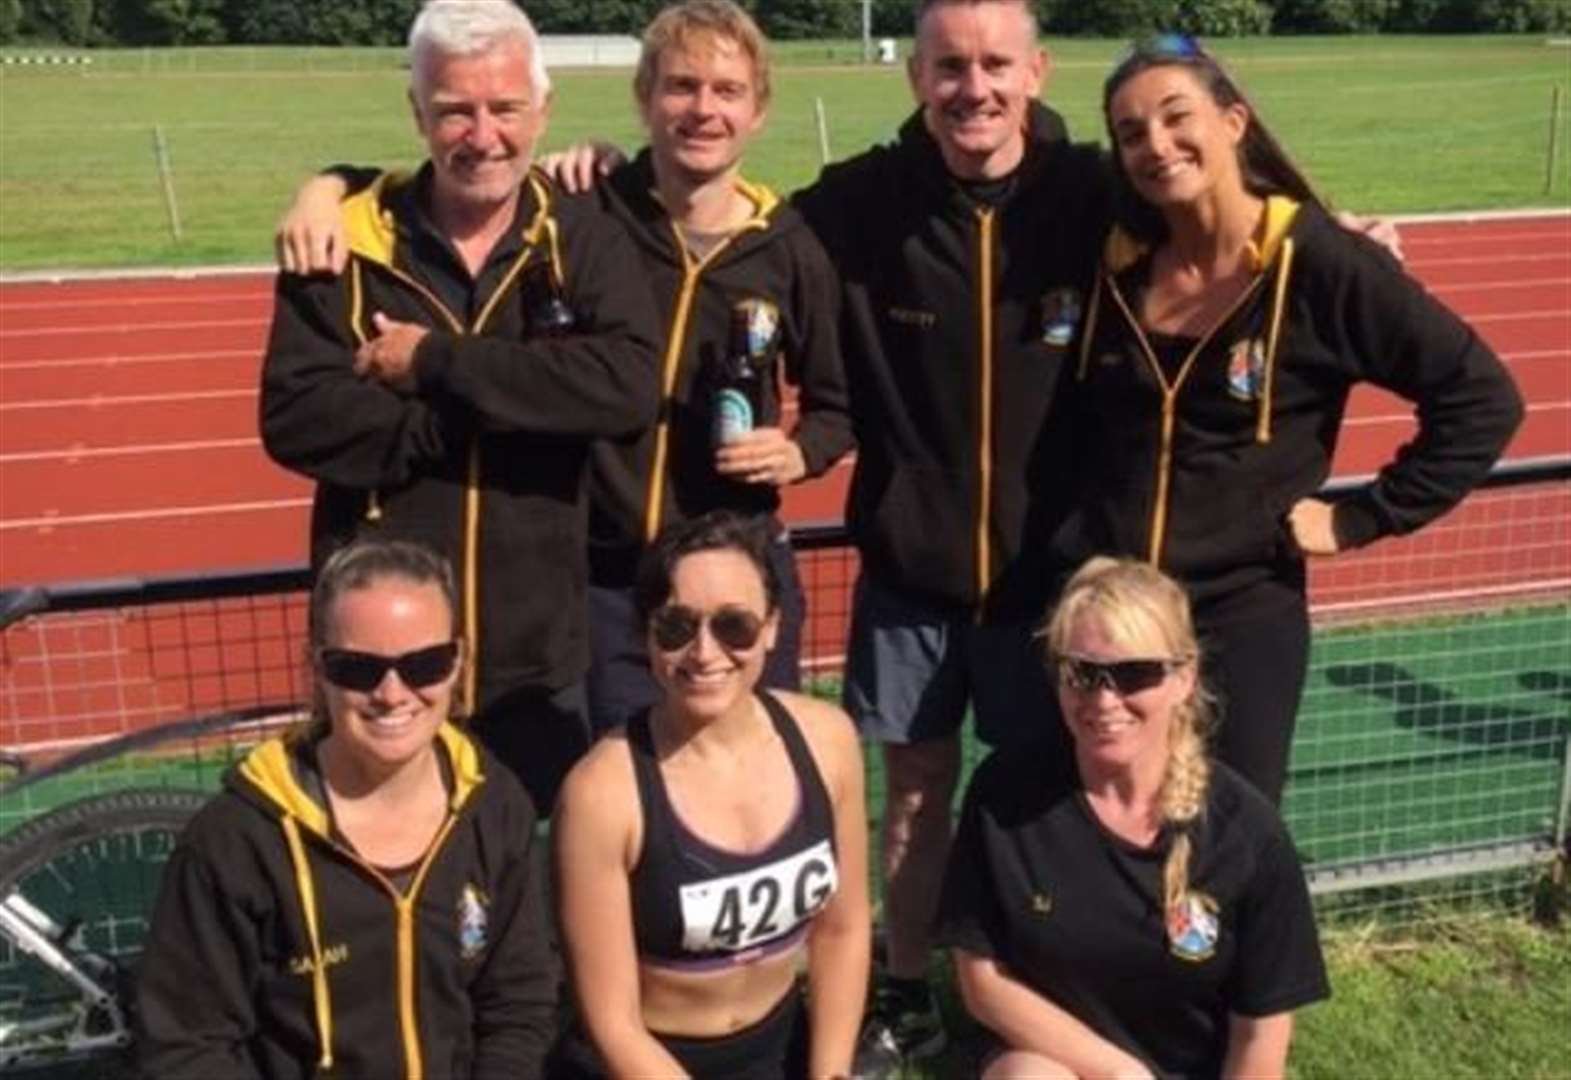 Leverington running club takes relay podium